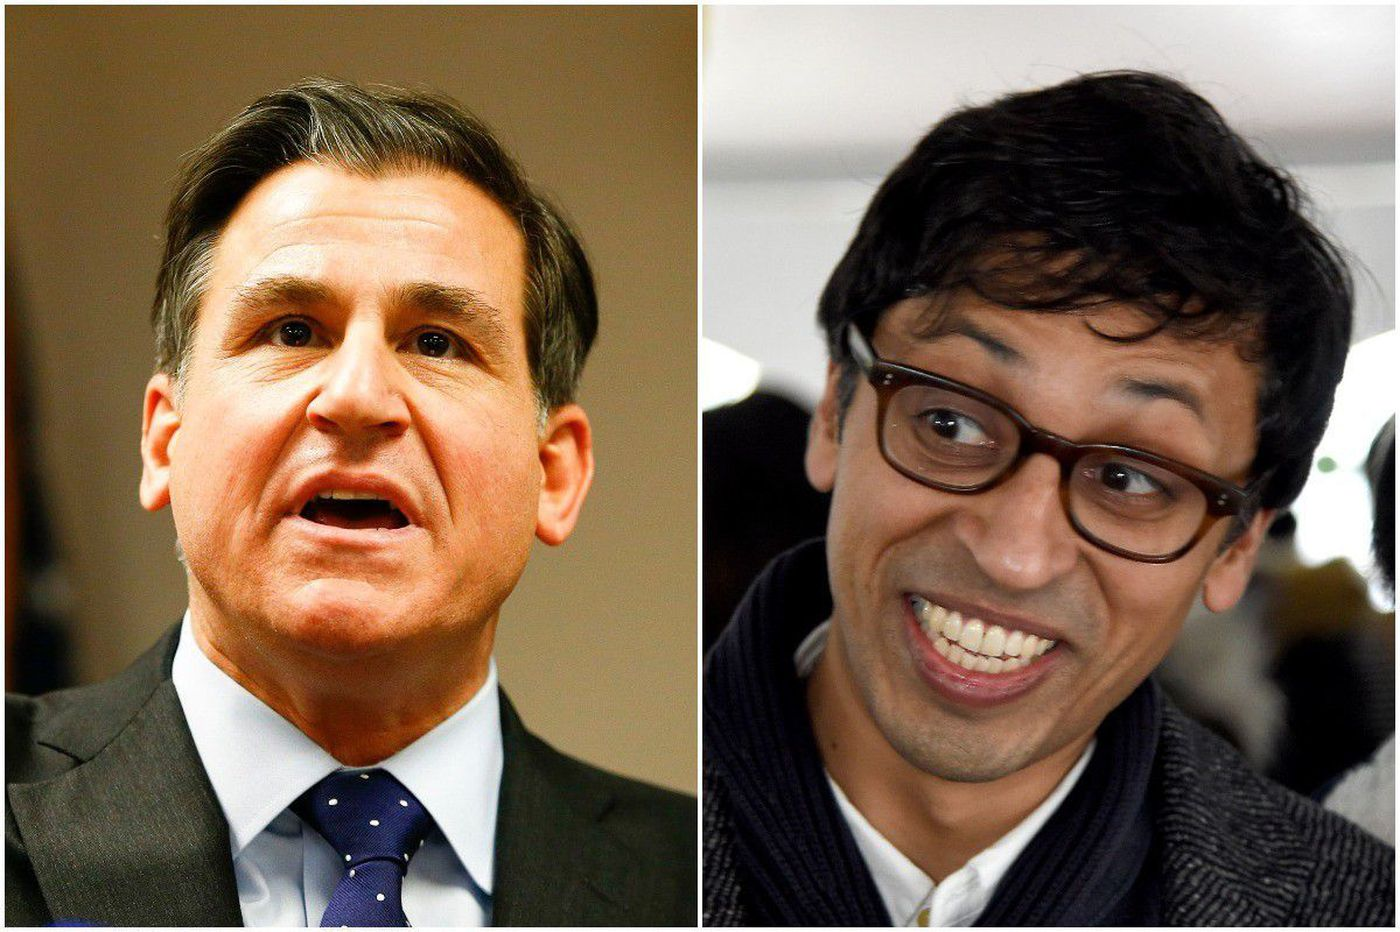 Nikil Saval is declared winner over Pennsylvania State Sen. Larry Farnese in Philly Democratic primary